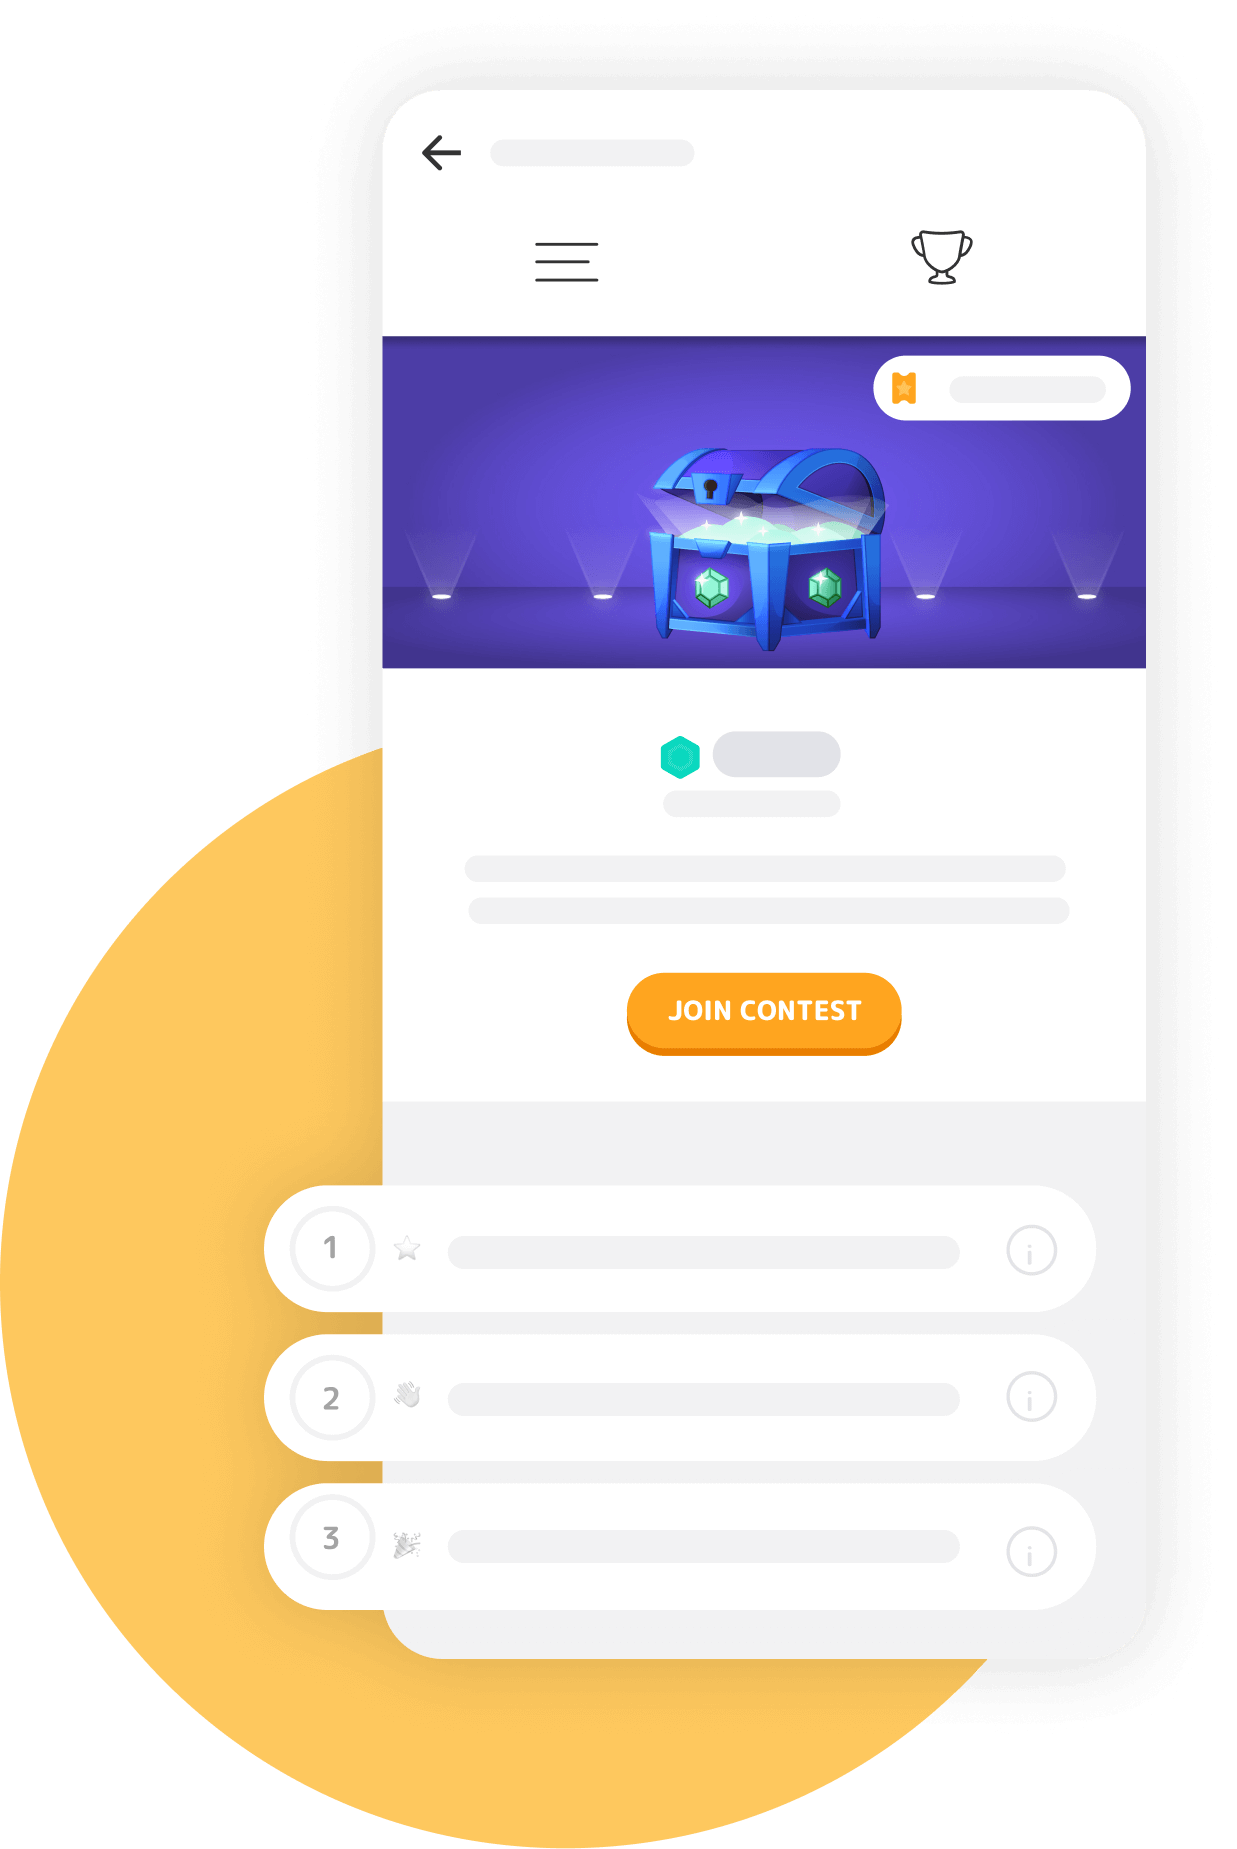 Design of the Mistplay app weekly contest page